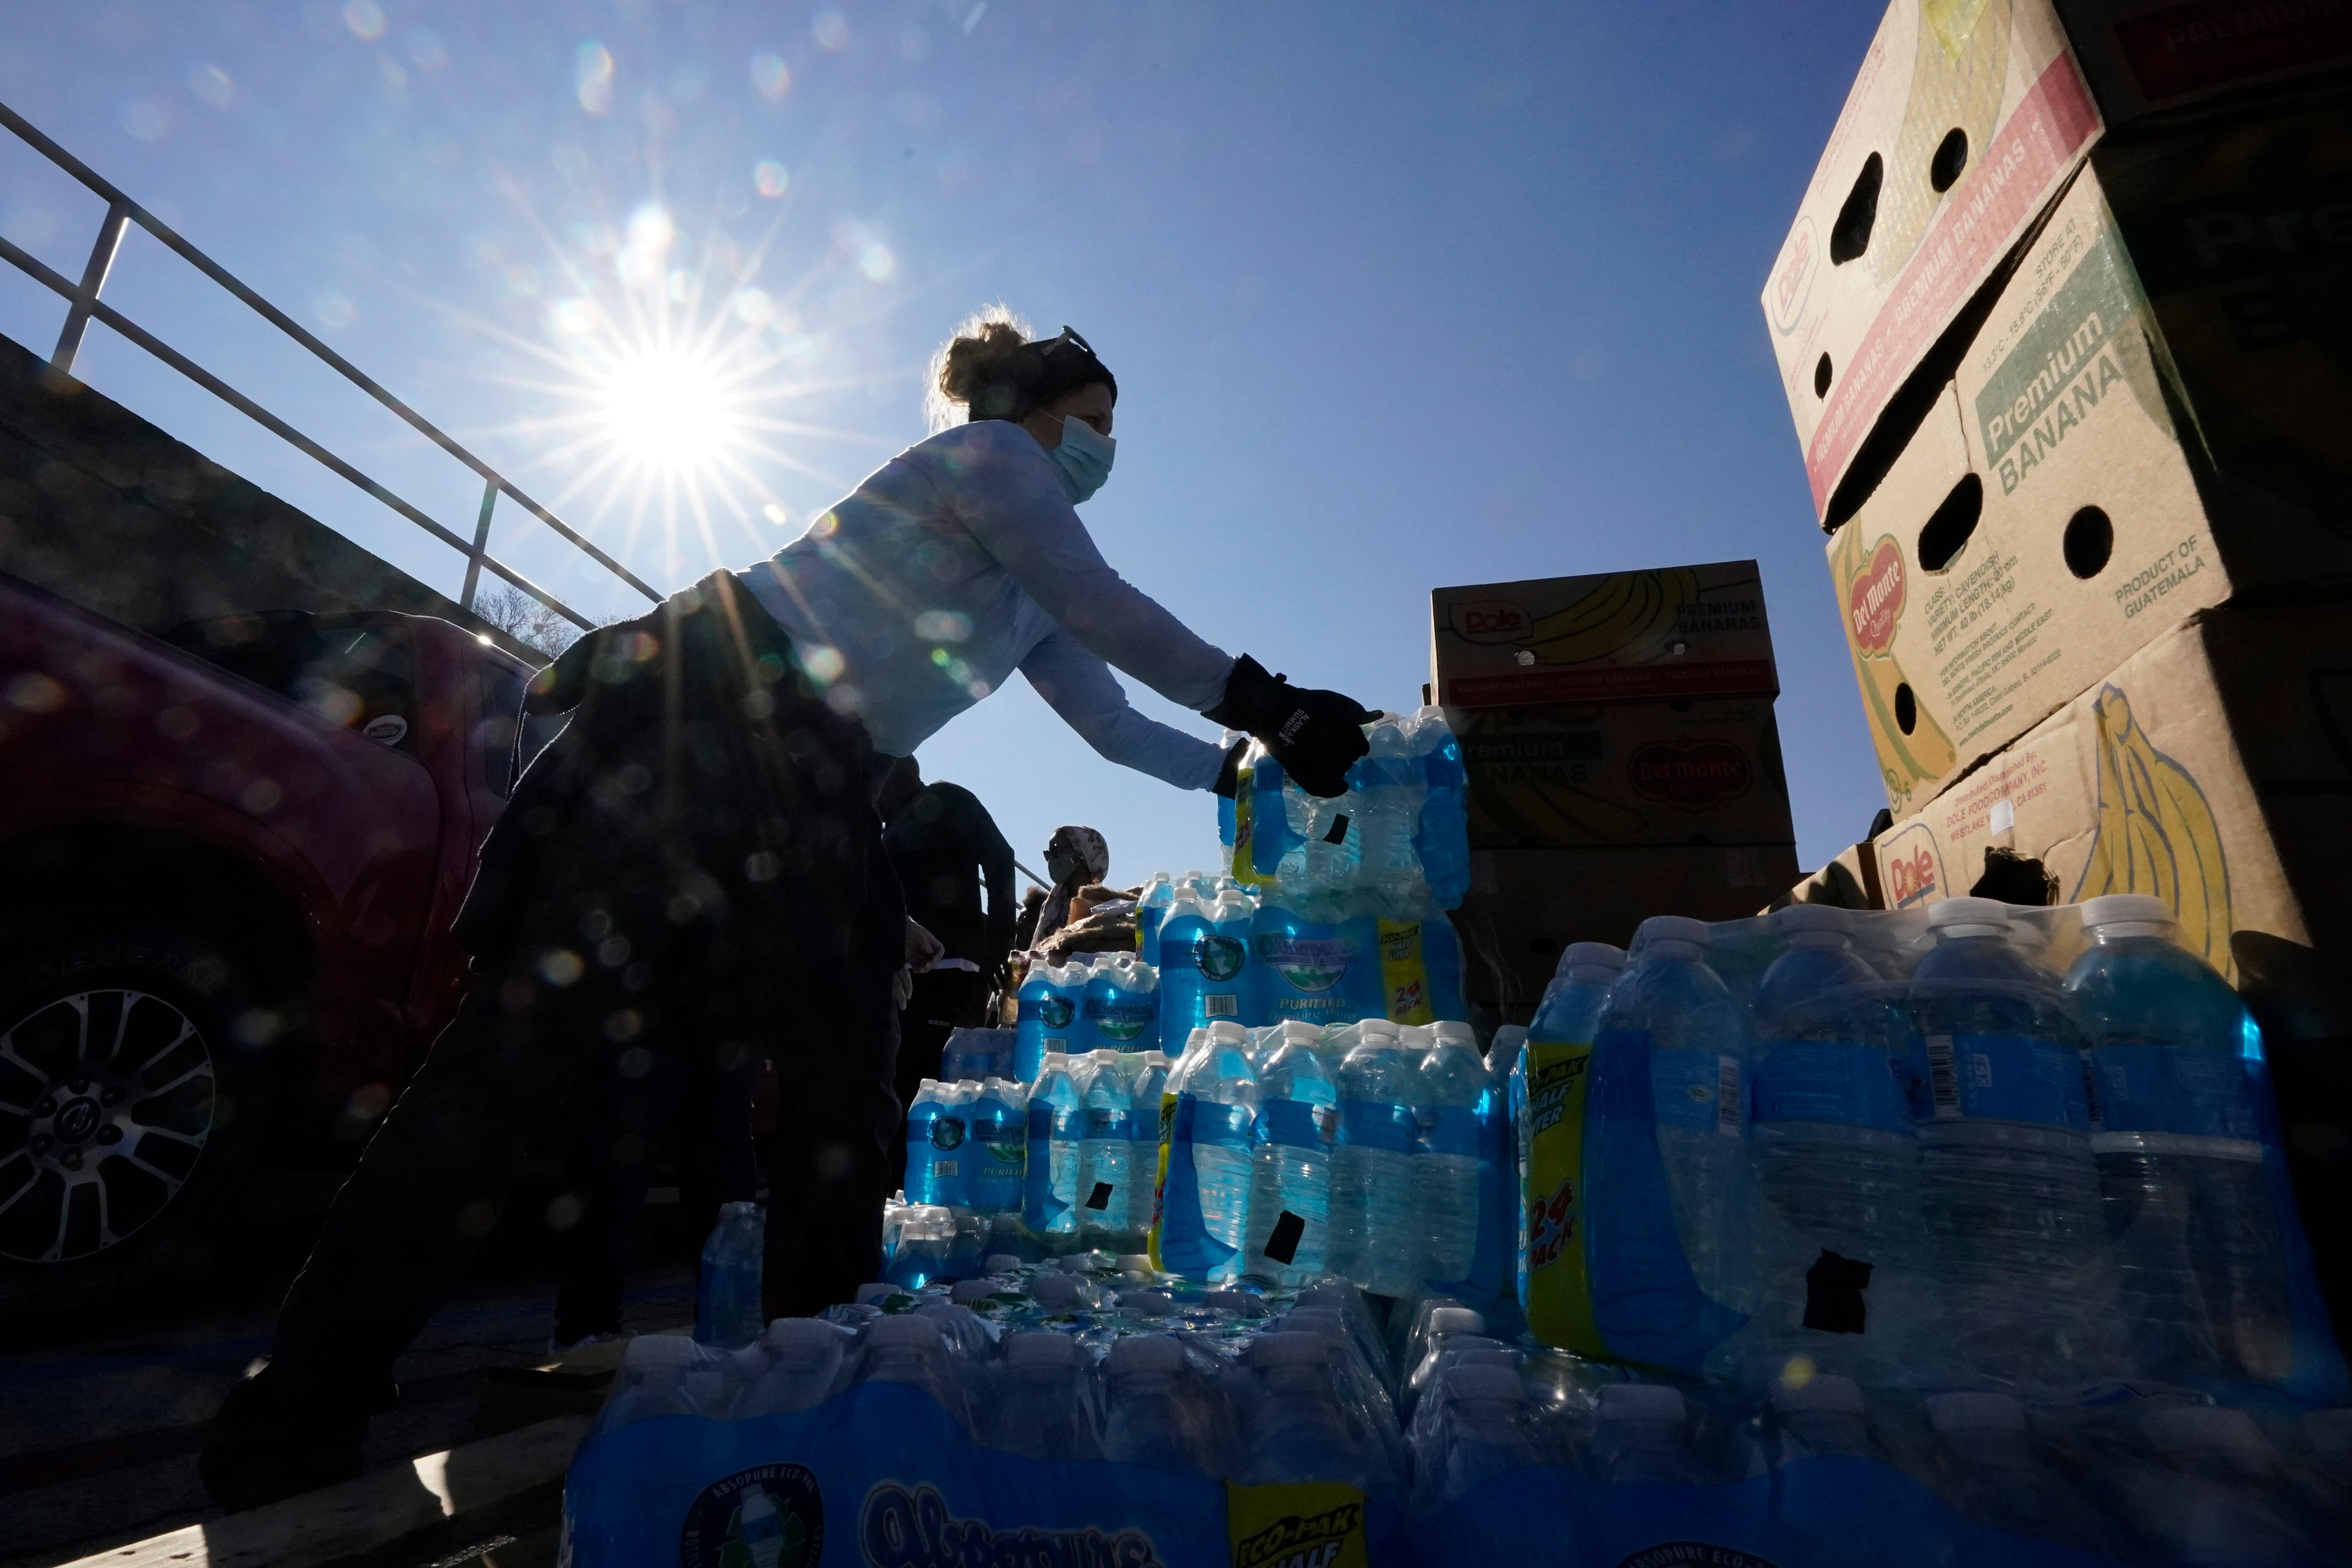 Southern cities hit hard by storms face new crisis: No water 2